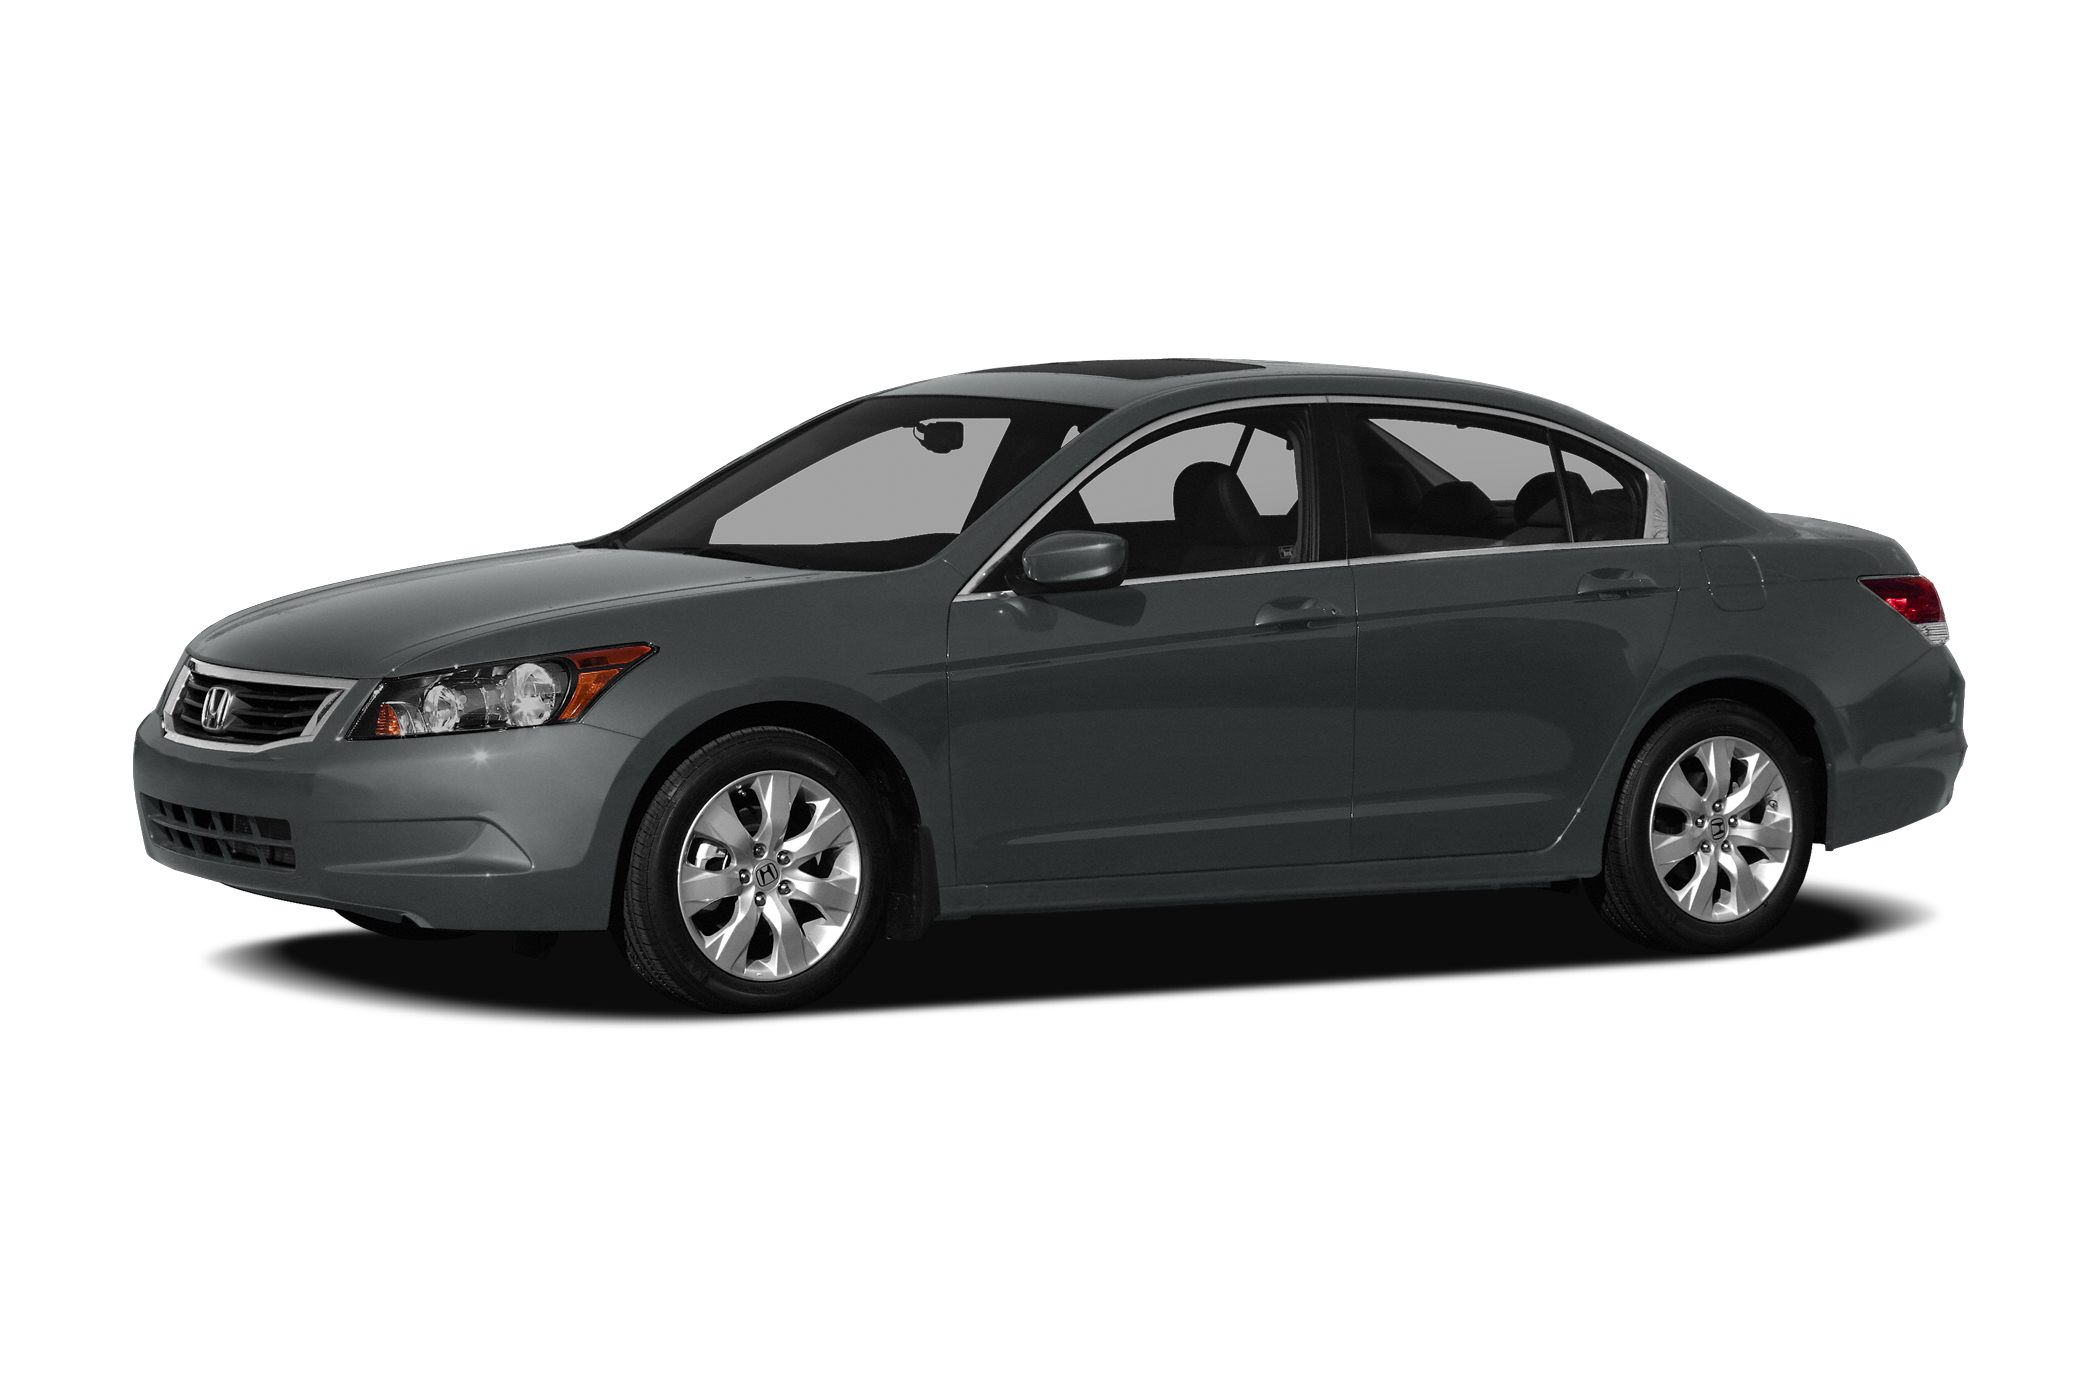 2009 Honda Accord  New Arrival CarFax One Owner Heated Seats Multi-Zone Air Conditioning Auto